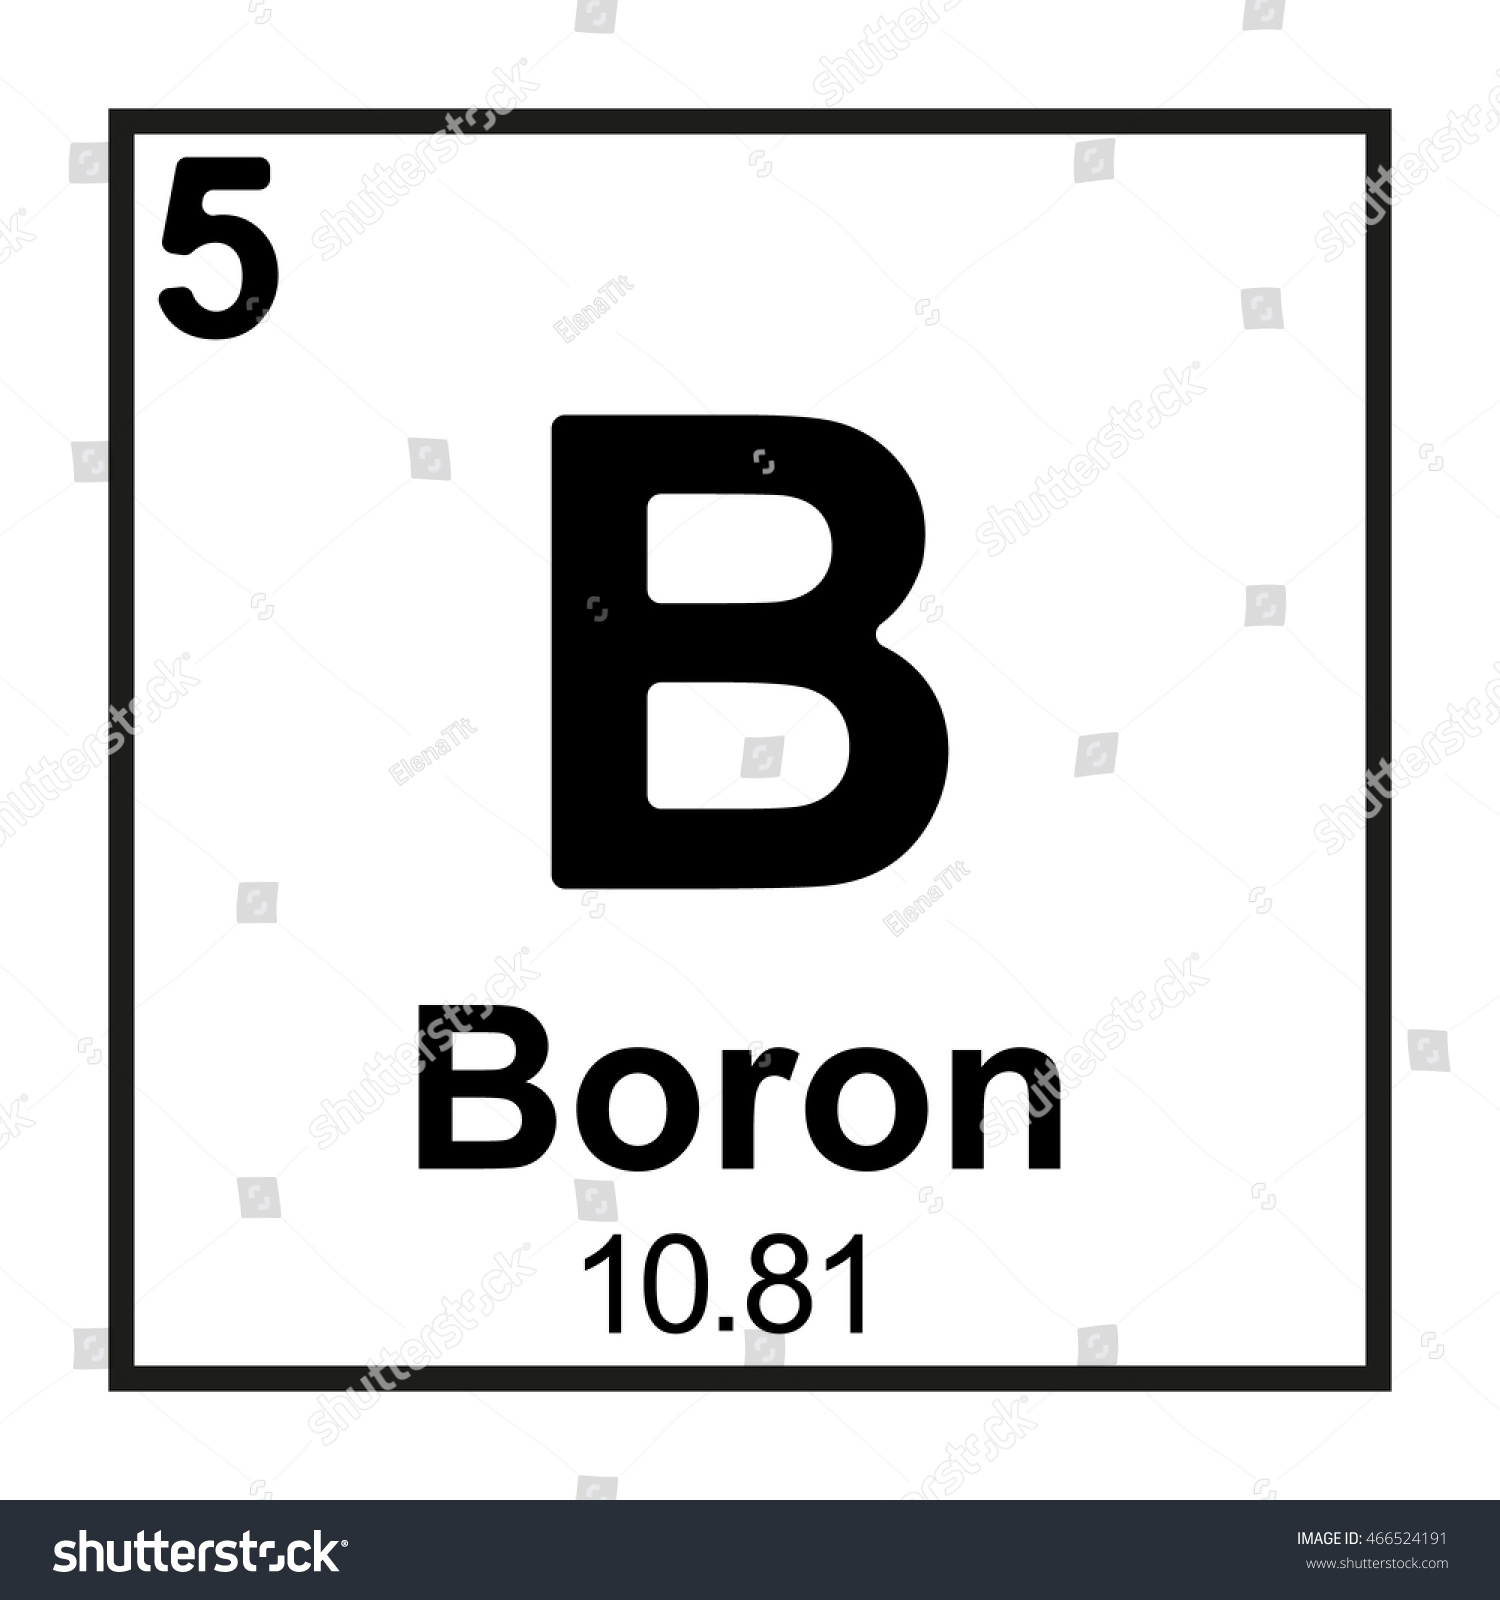 Periodic table element boron stock vector 466524191 shutterstock the periodic table element boron gamestrikefo Image collections